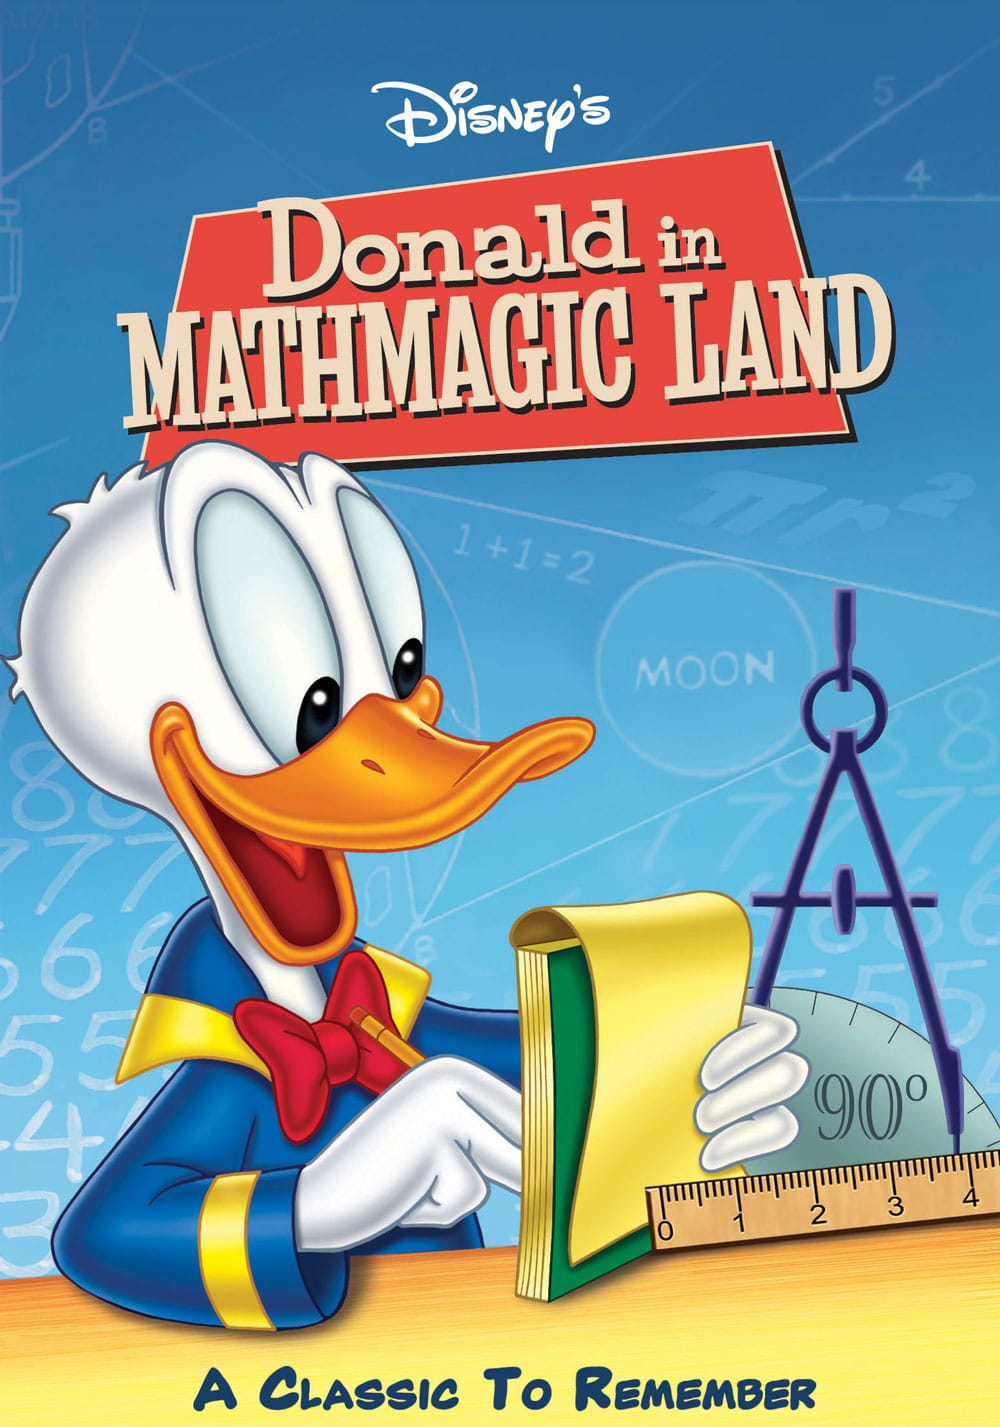 donald duck in mathmagic land essay